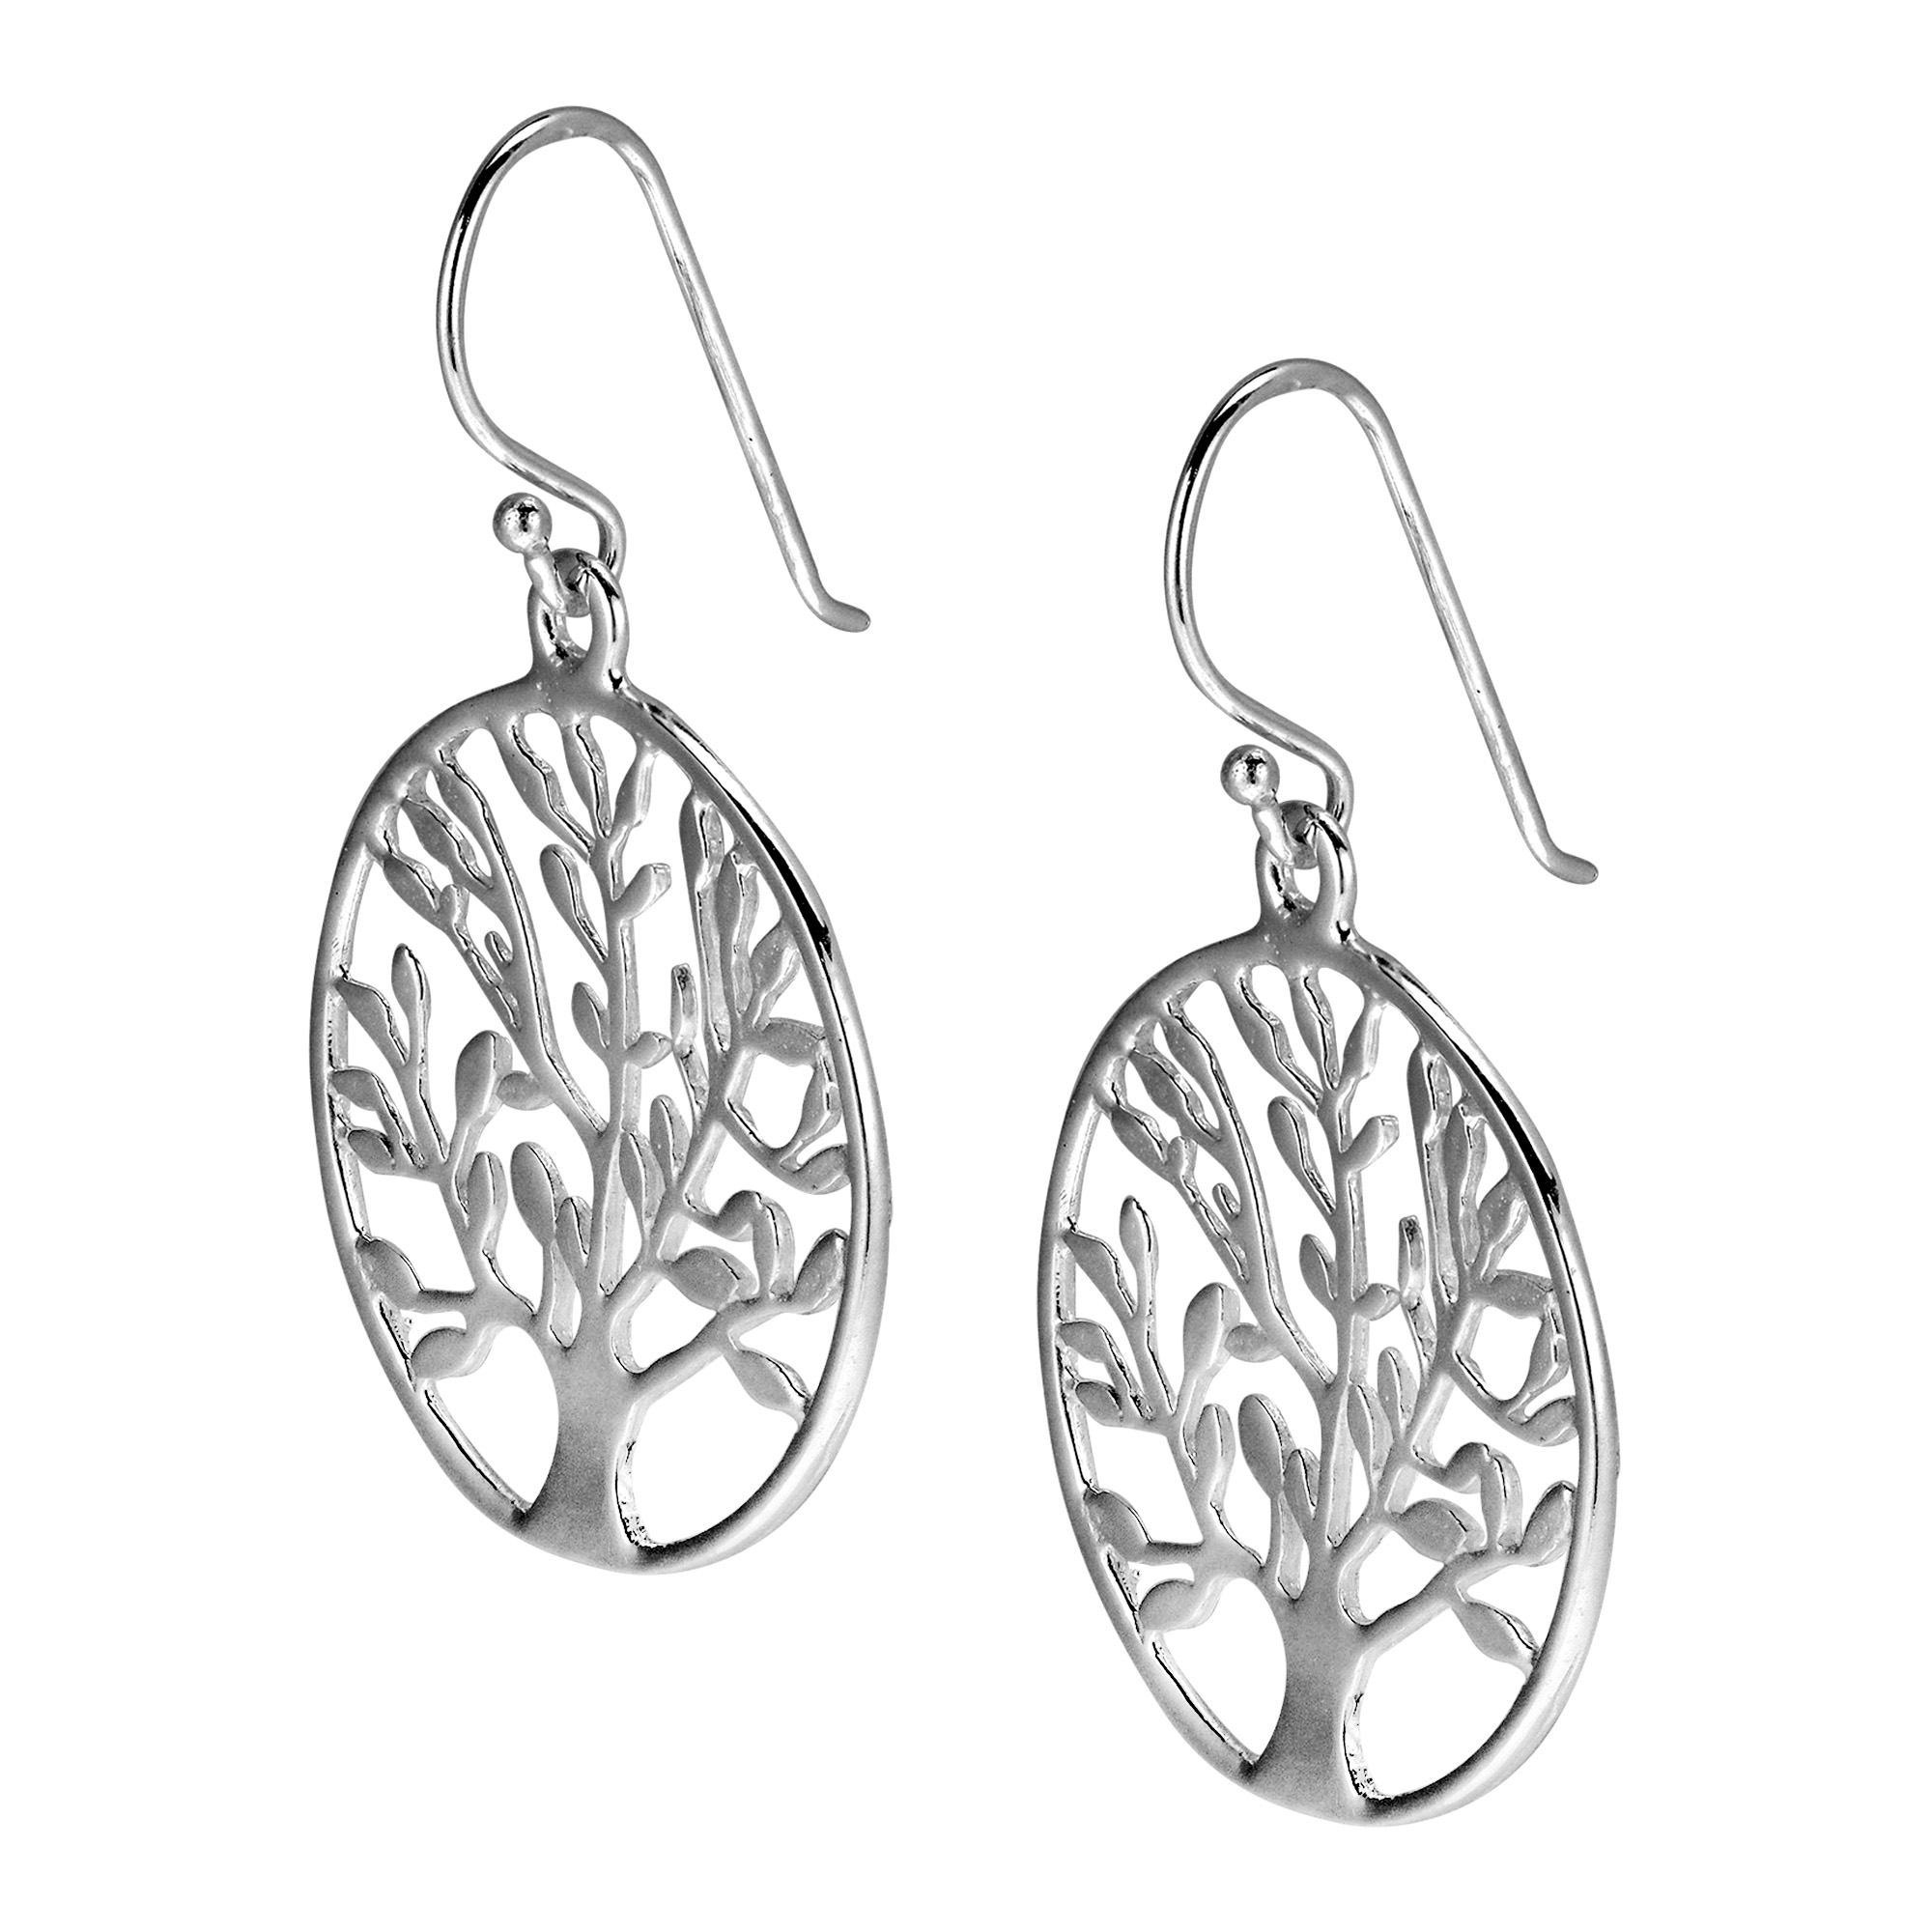 Local Aeravida Katsaya Handcrafted This Fabulous Earring Set These Unique Earrings Features The Tree Of Life In Sterling Silver